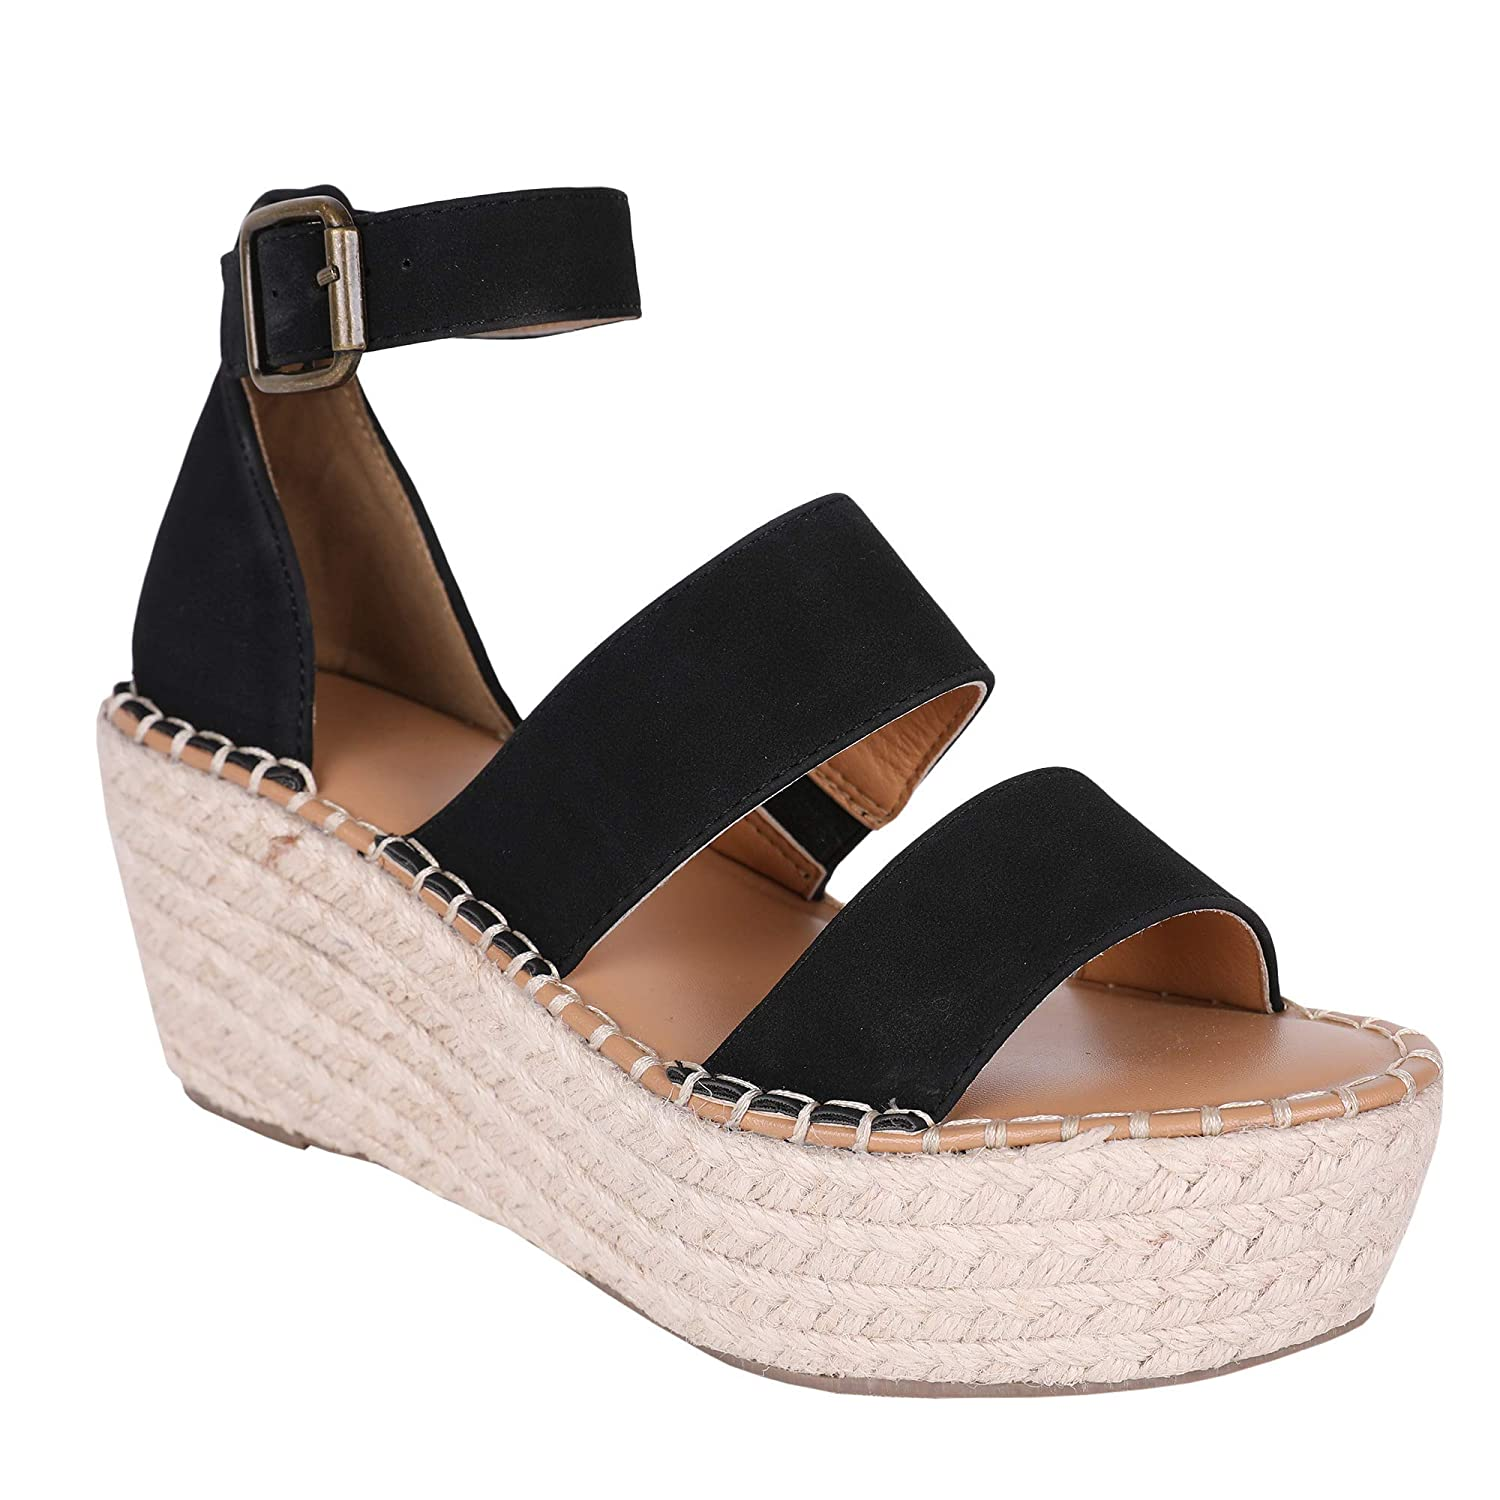 2354b386dcf FISACE Womens Espadrille Strappy Platform Wedge Sandals Open Toe Ankle  Buckle Summer Dress Shoes